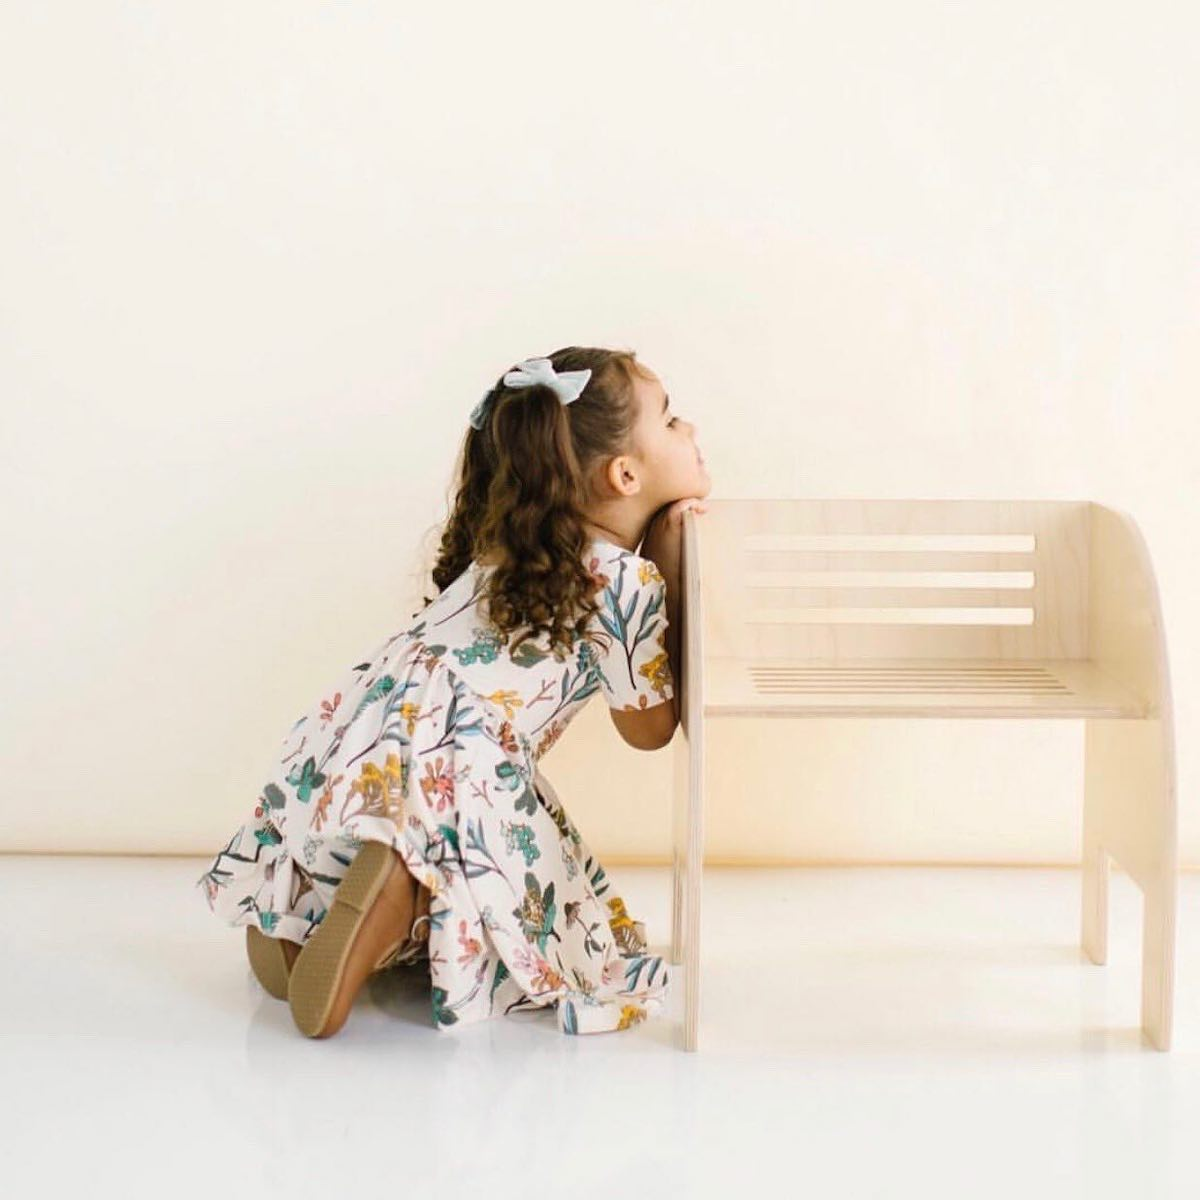 A young girl resting her chin on a Wit Design chair